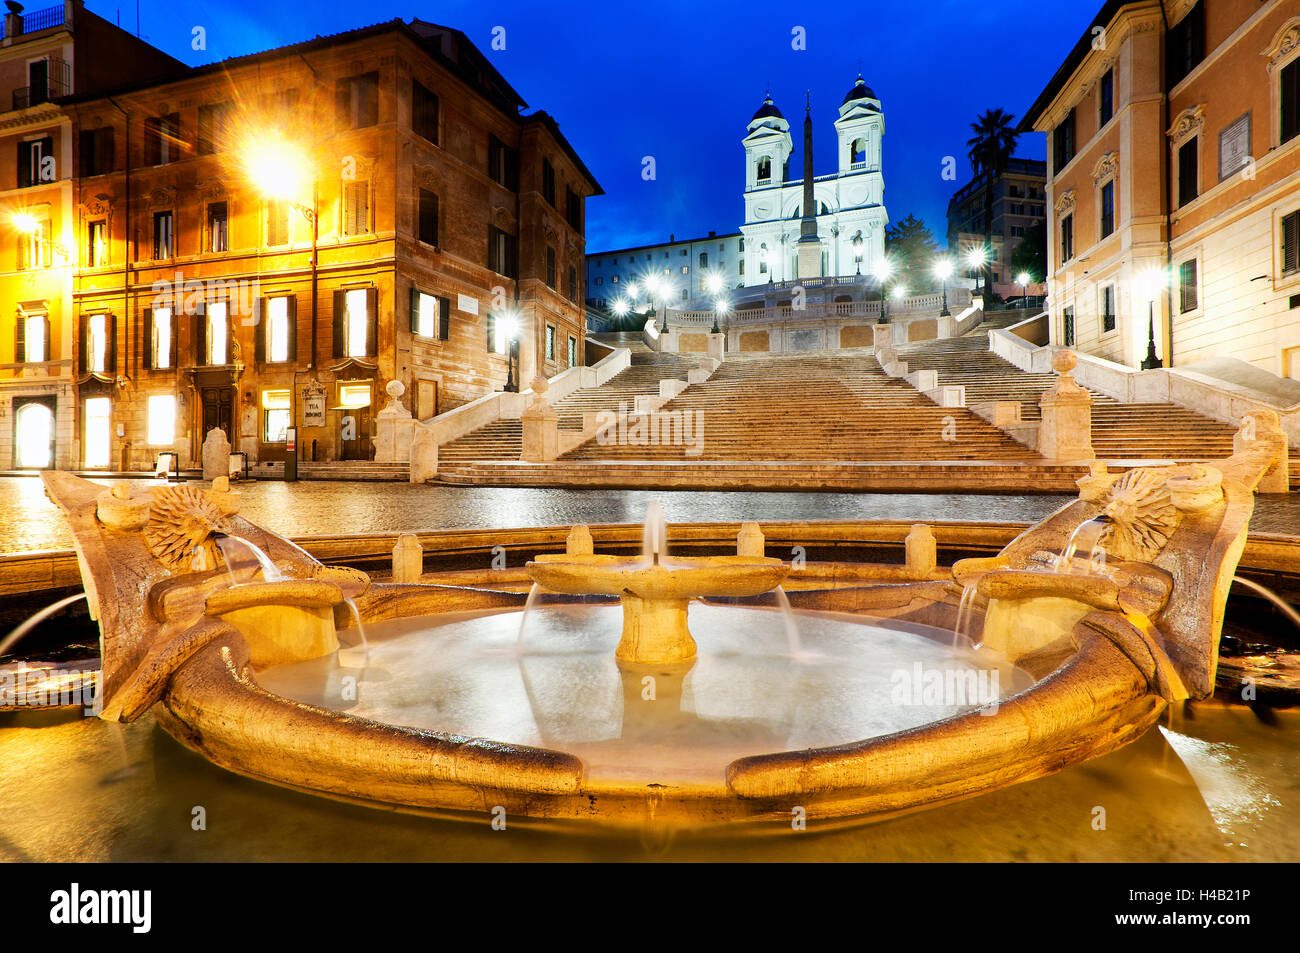 Newly restored Piazza di Spagna, Rome Italy - Stock Image